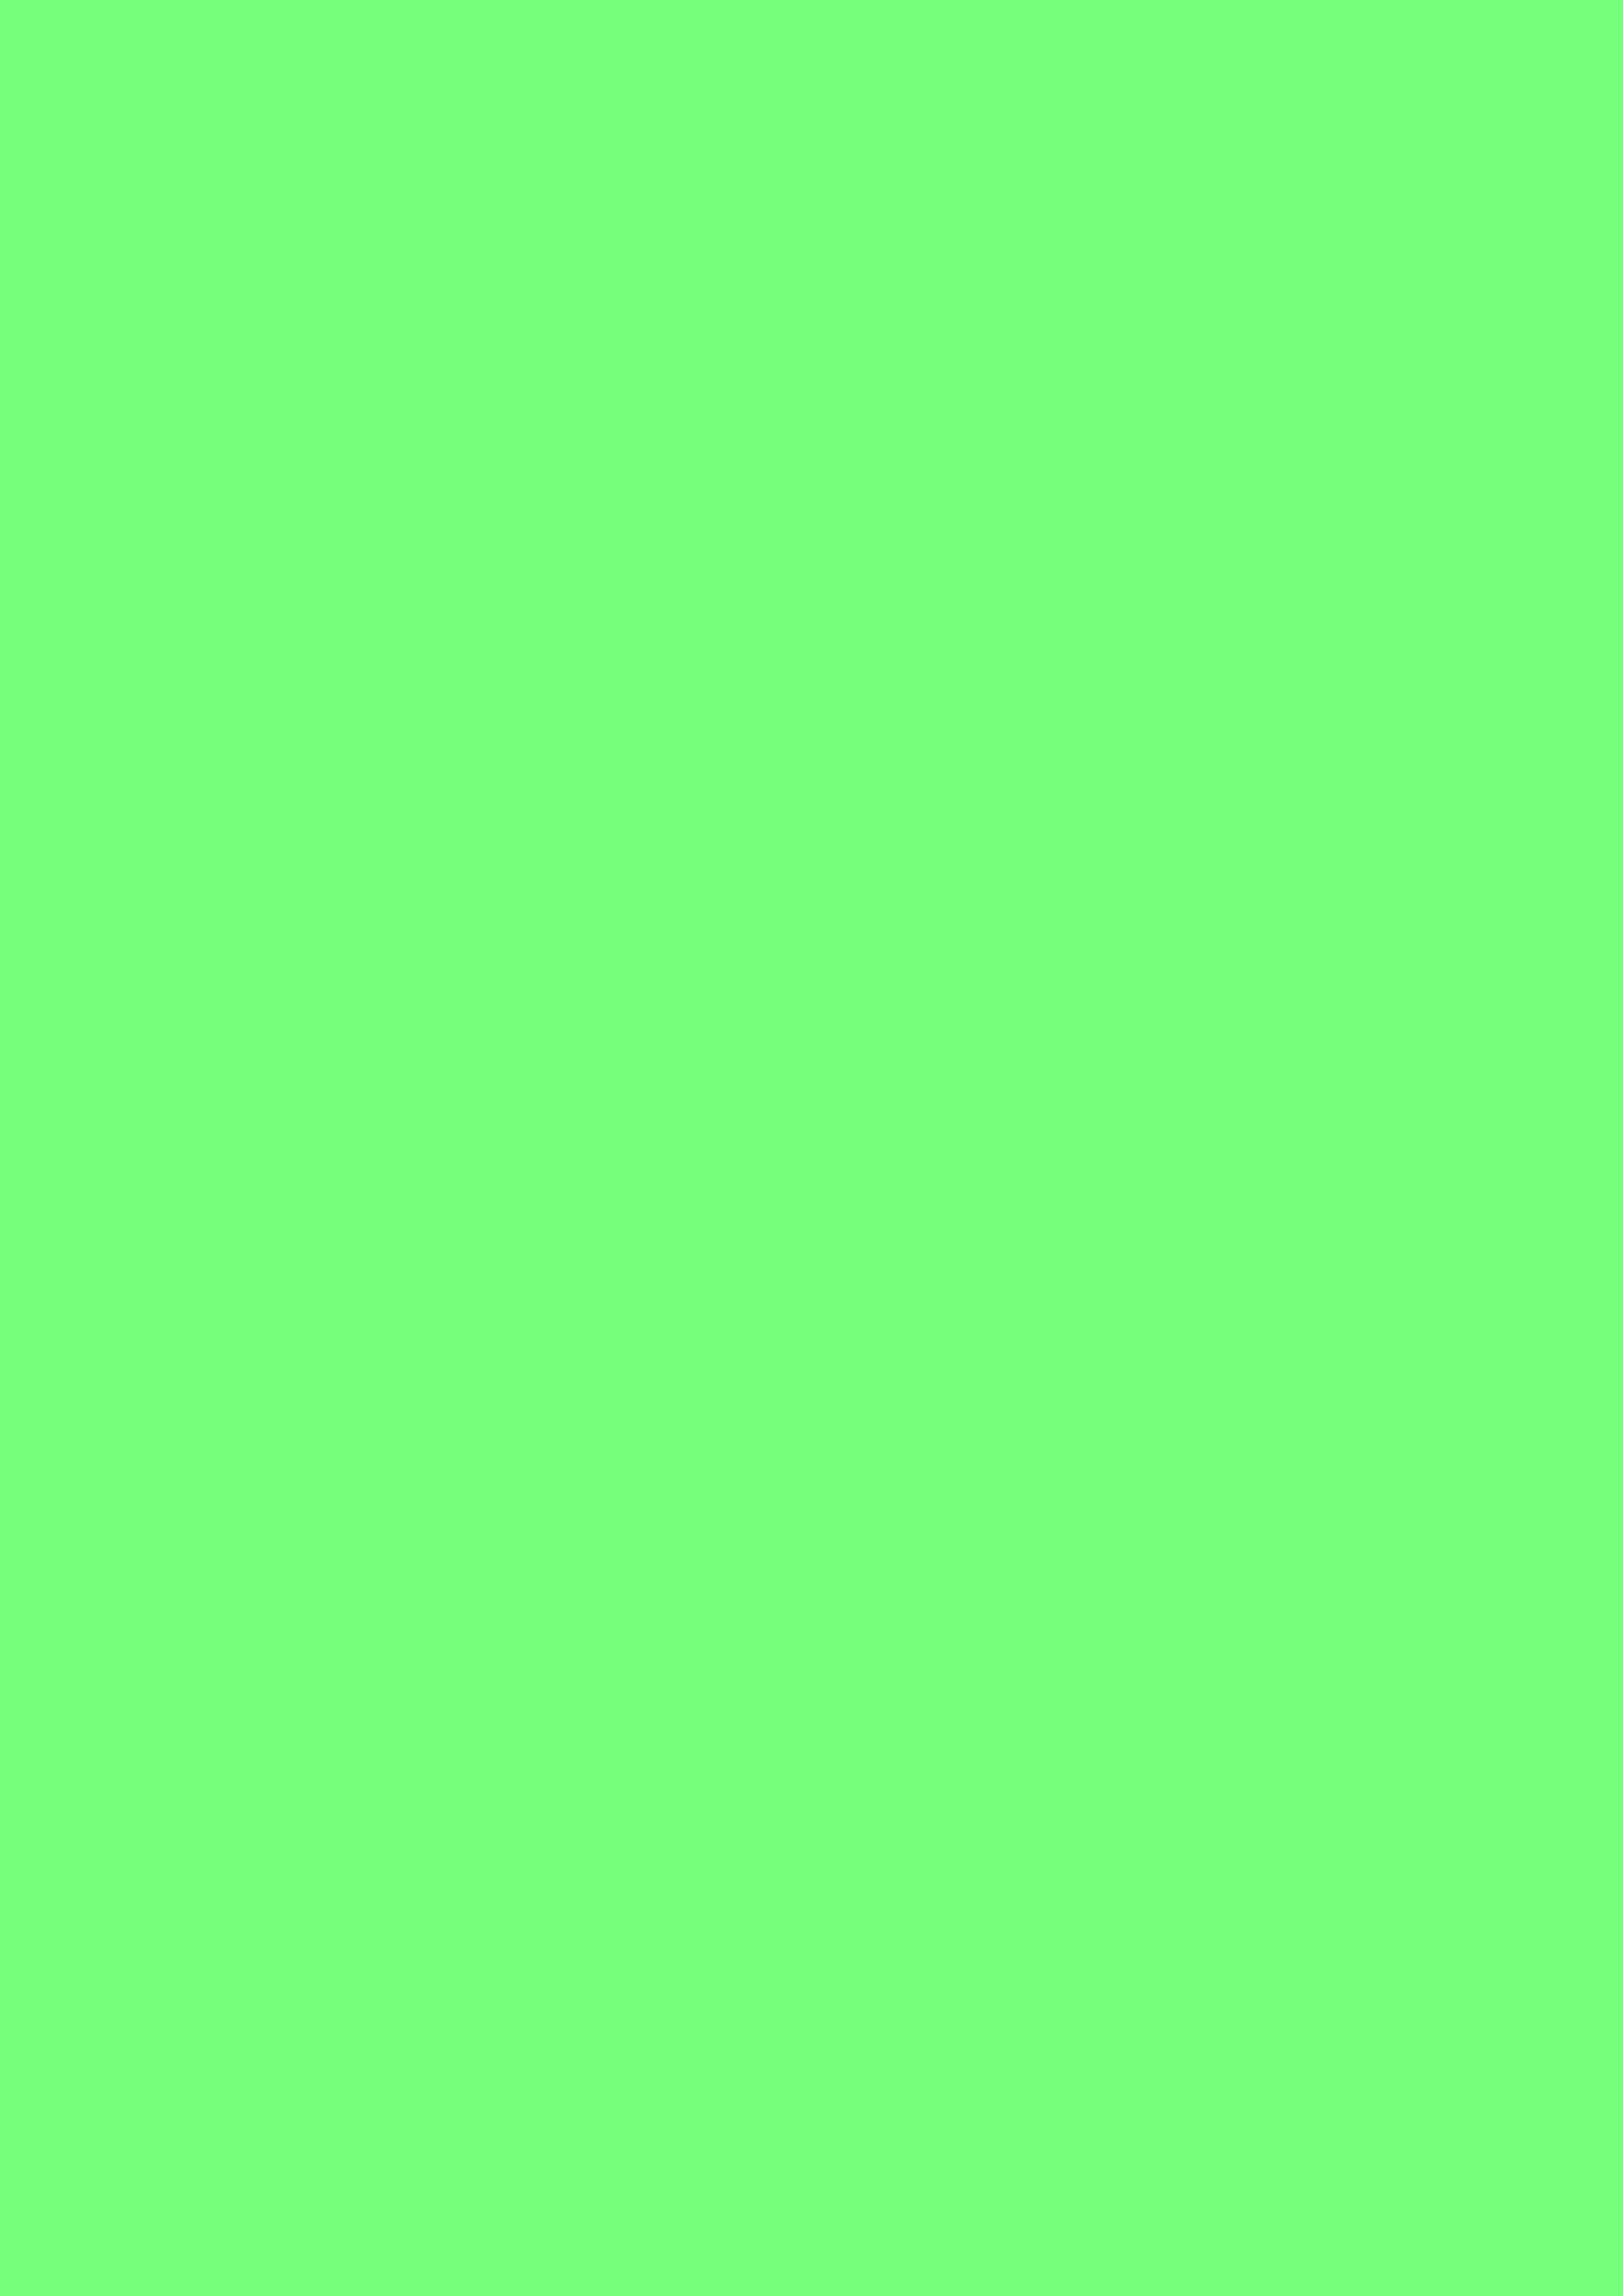 2480x3508 Screamin Green Solid Color Background